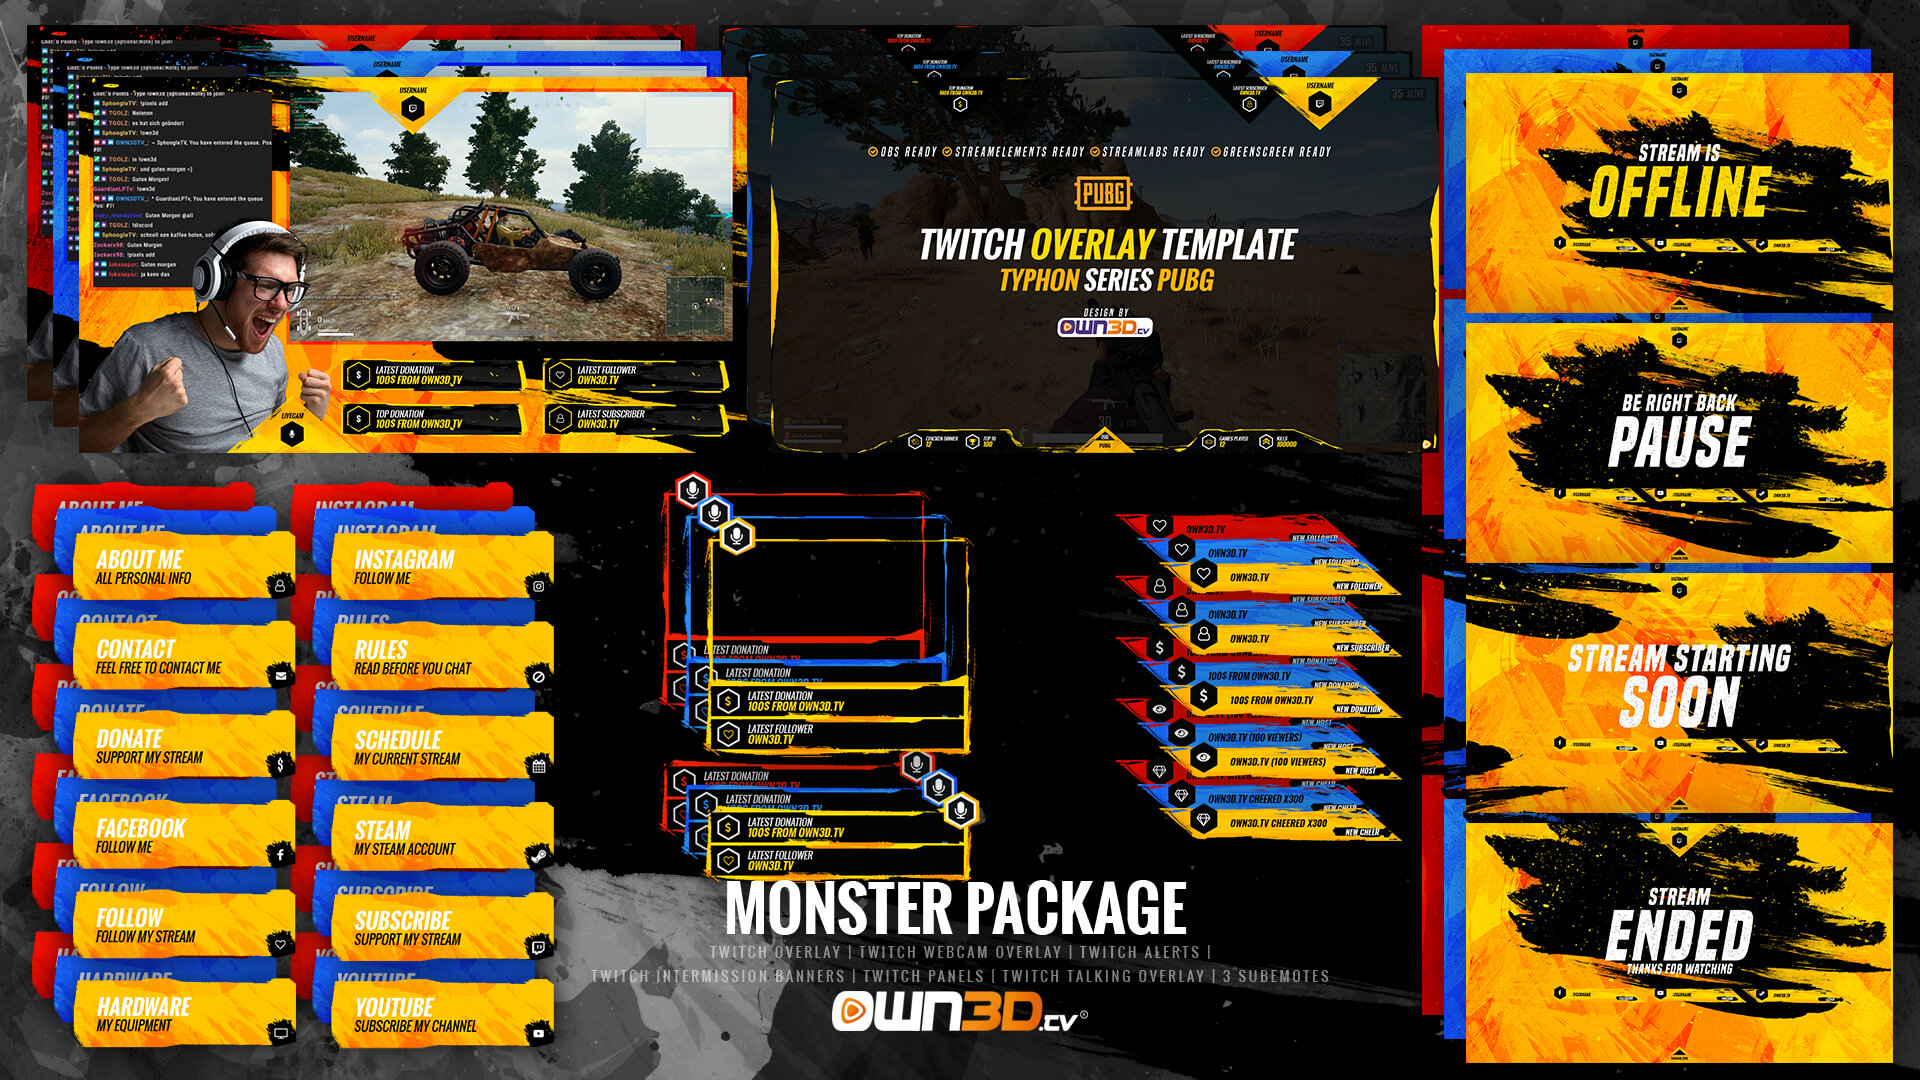 typhon-series-PUBG-twitch-overlay-package-03-monster.jpg